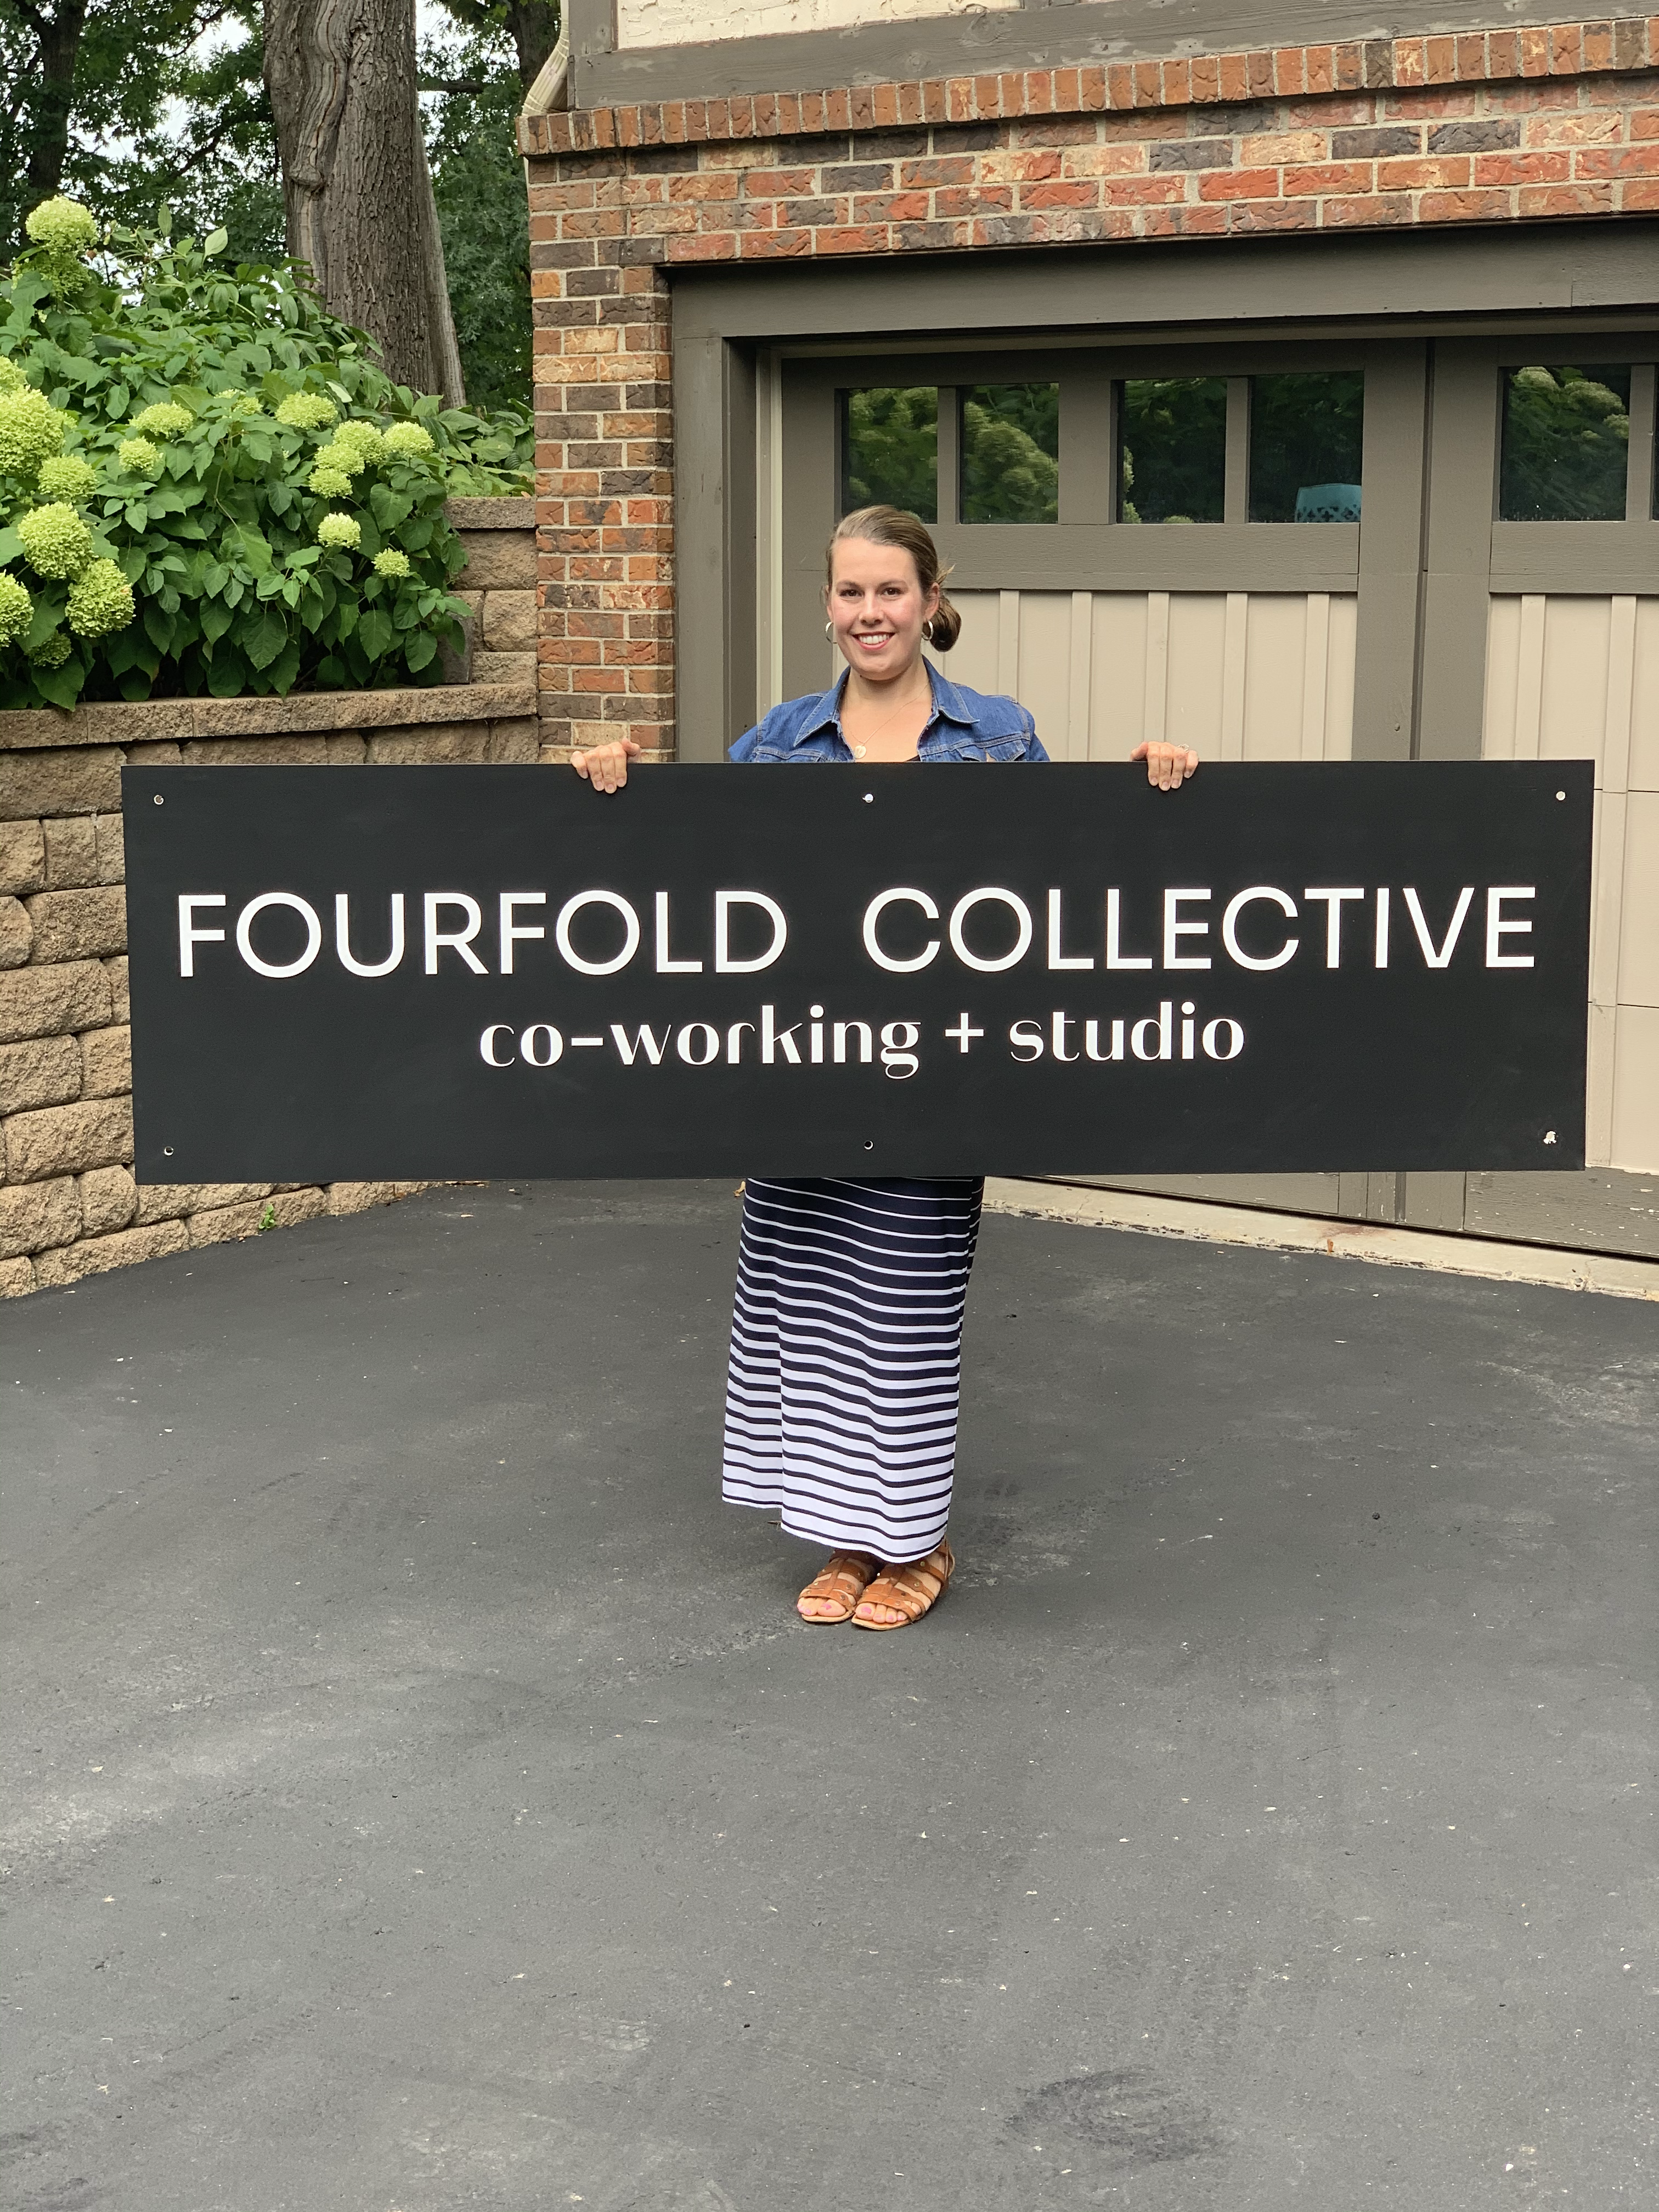 Fourfold Collective Building Sign